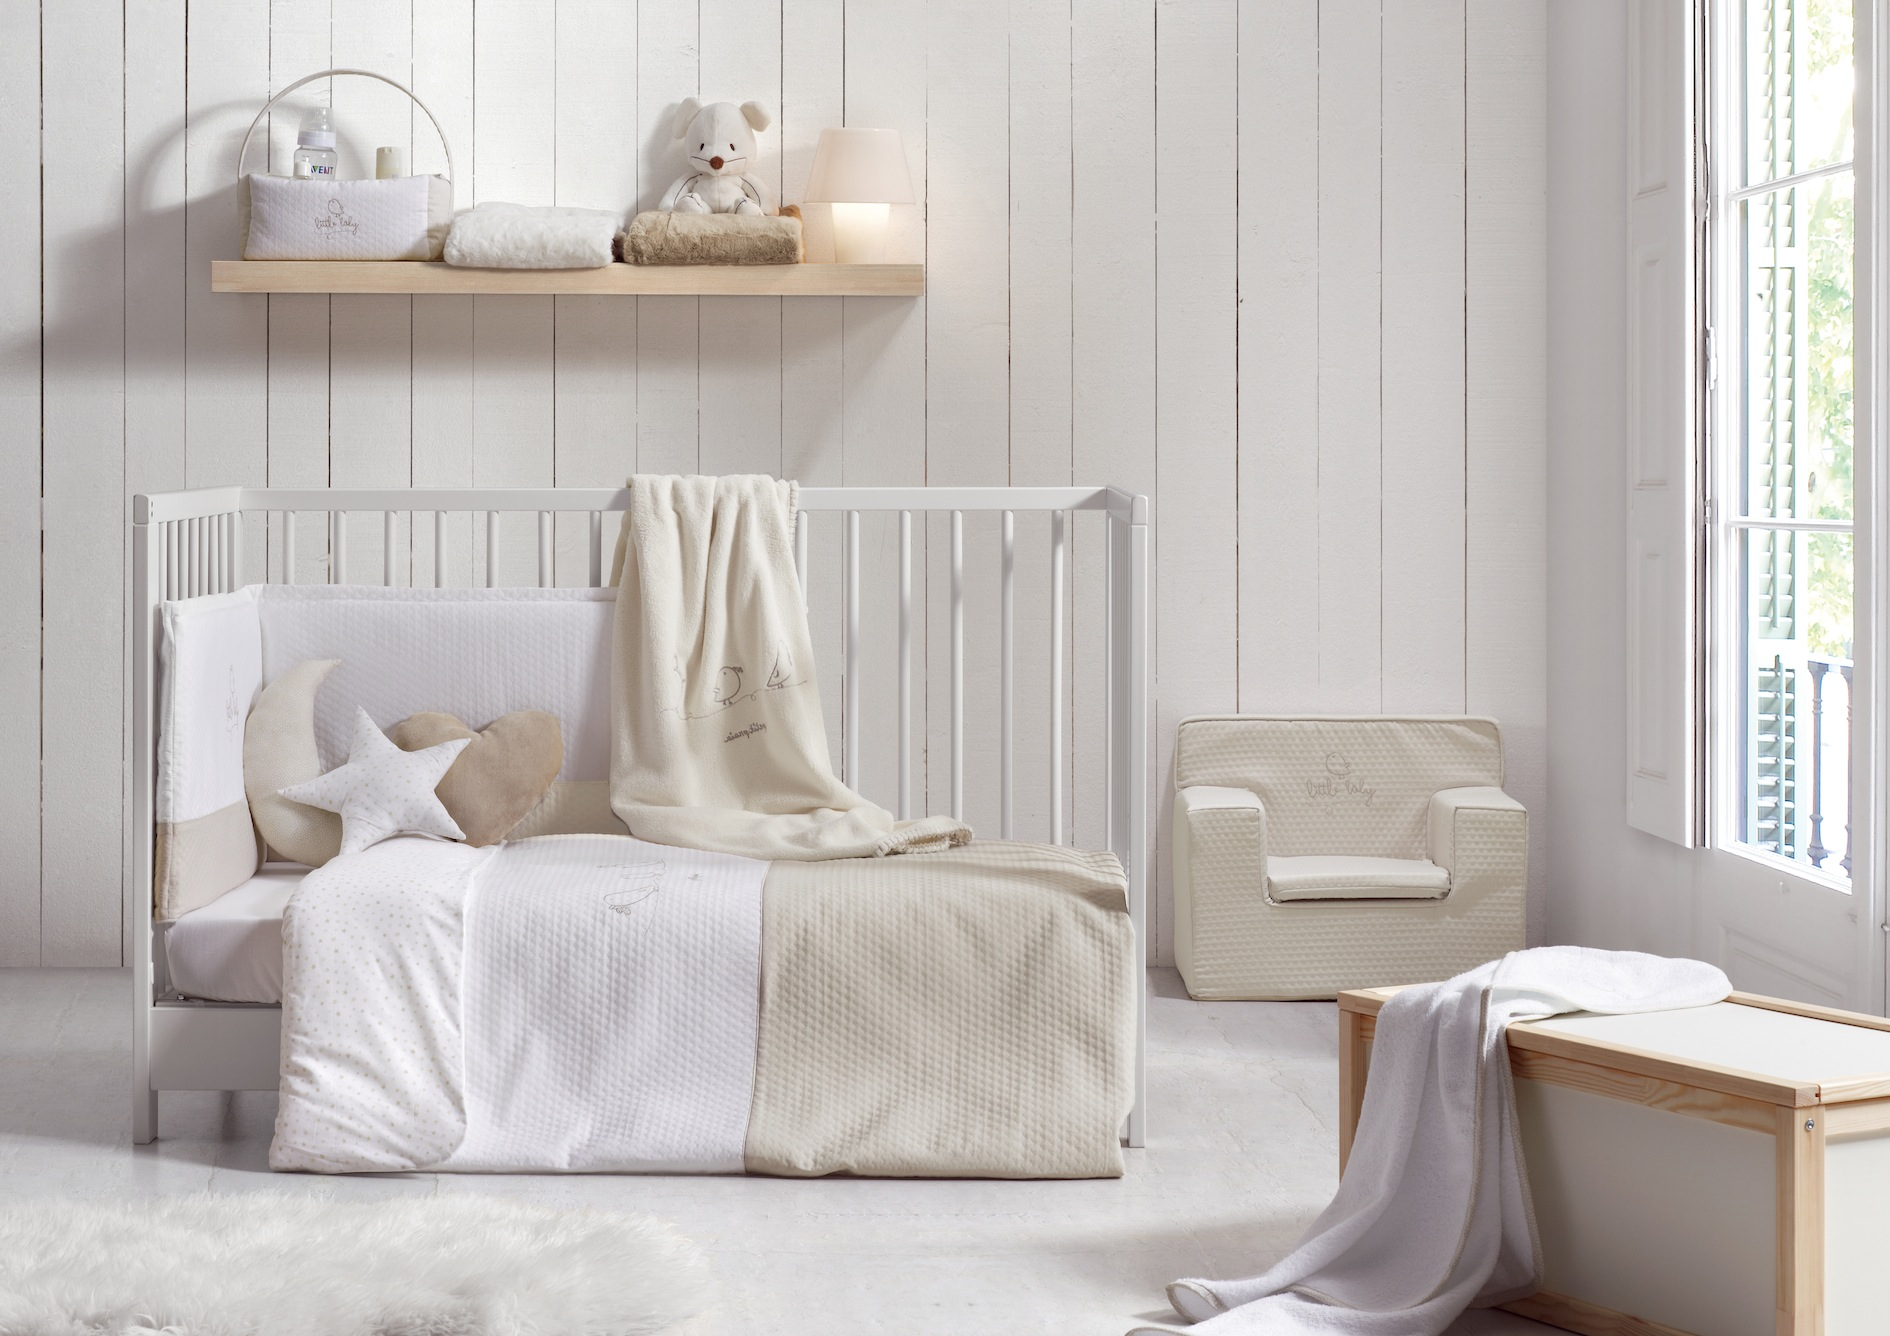 10 ideas para decorar la habitaci n del beb productos for Como decorar la habitacion de un bebe